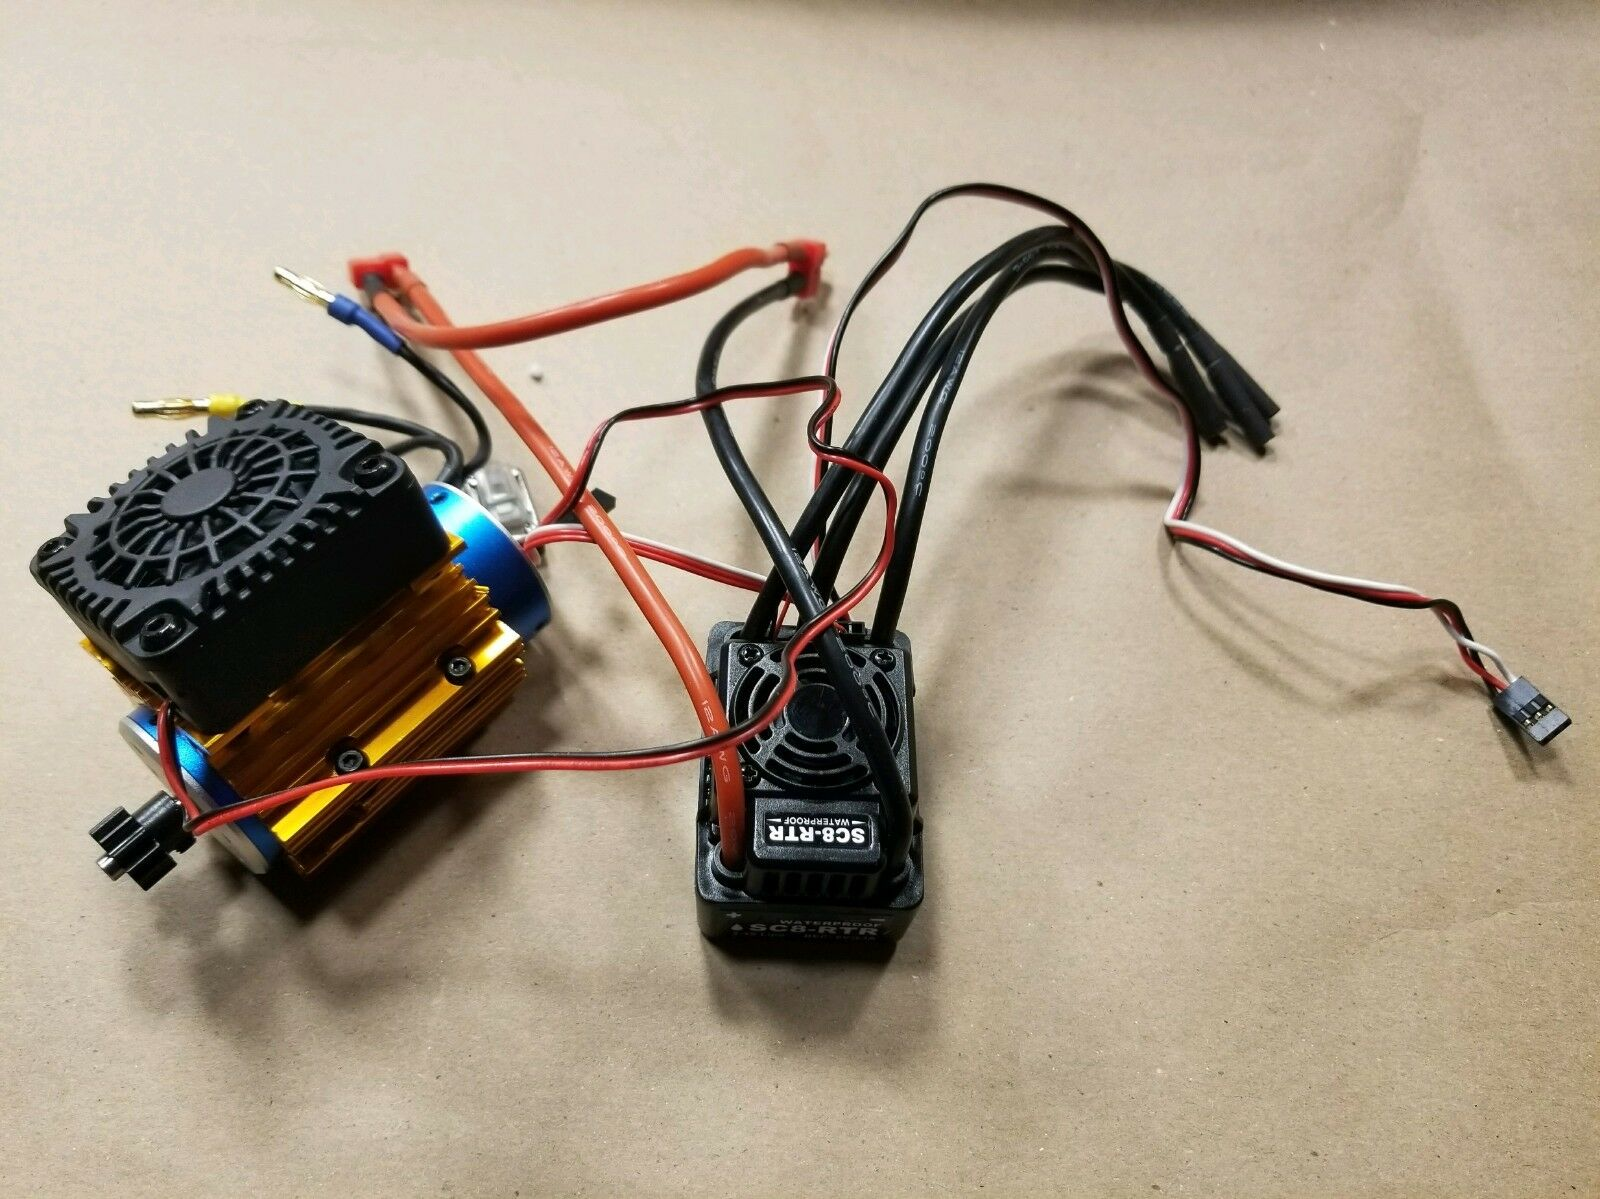 NEW Brushless motor (2030kv) 120A waterproof ESC DHK TRAXXAS VXL